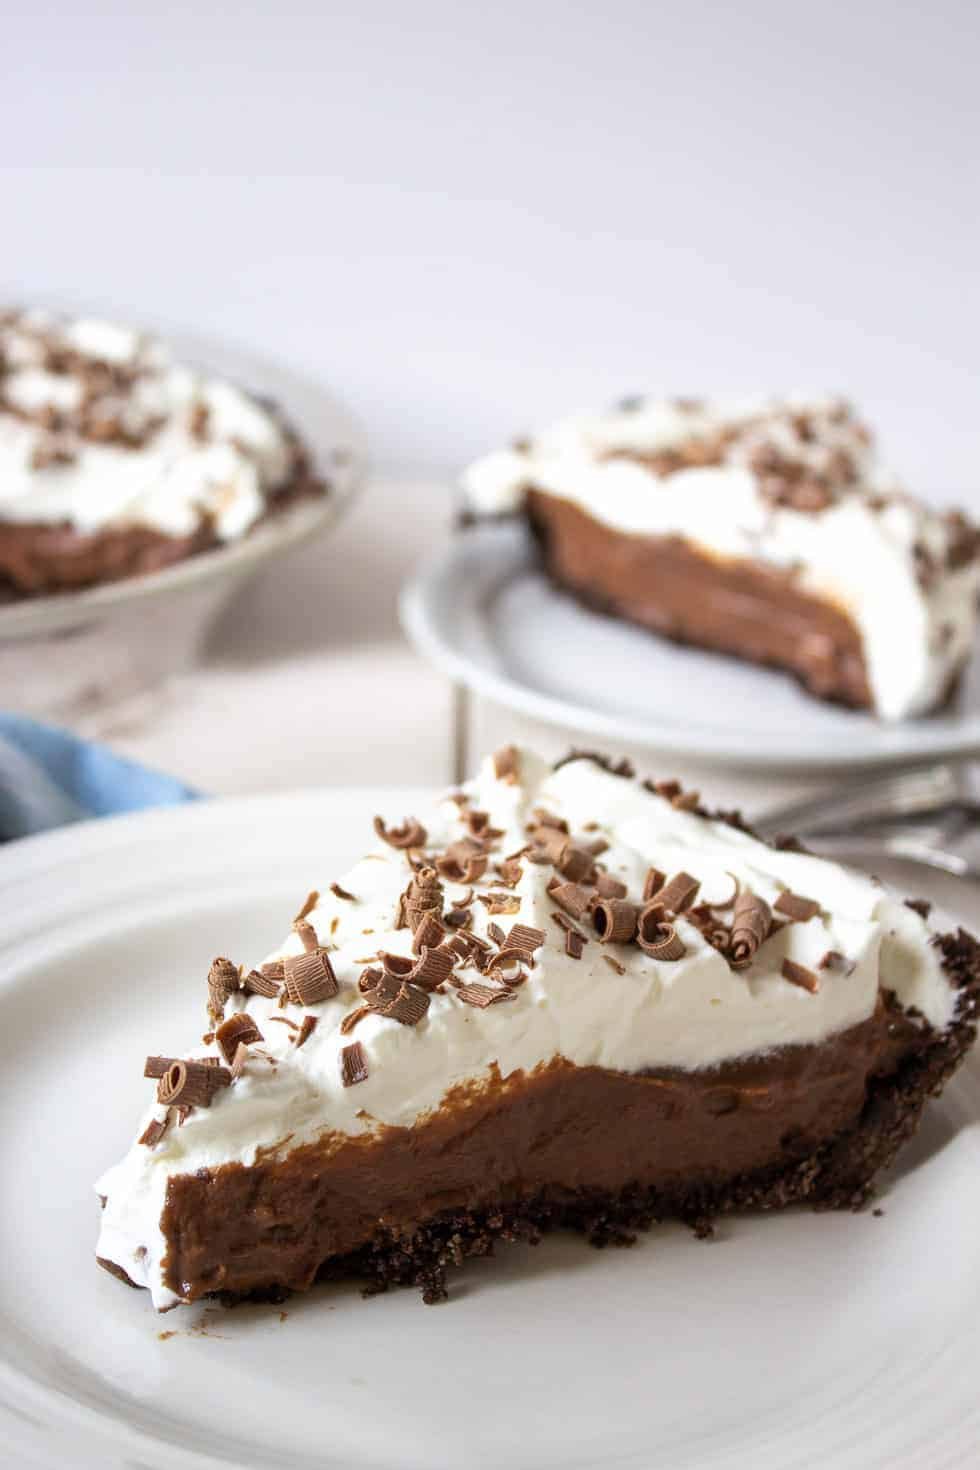 A slice of chocolate pie topped with whipped cream.